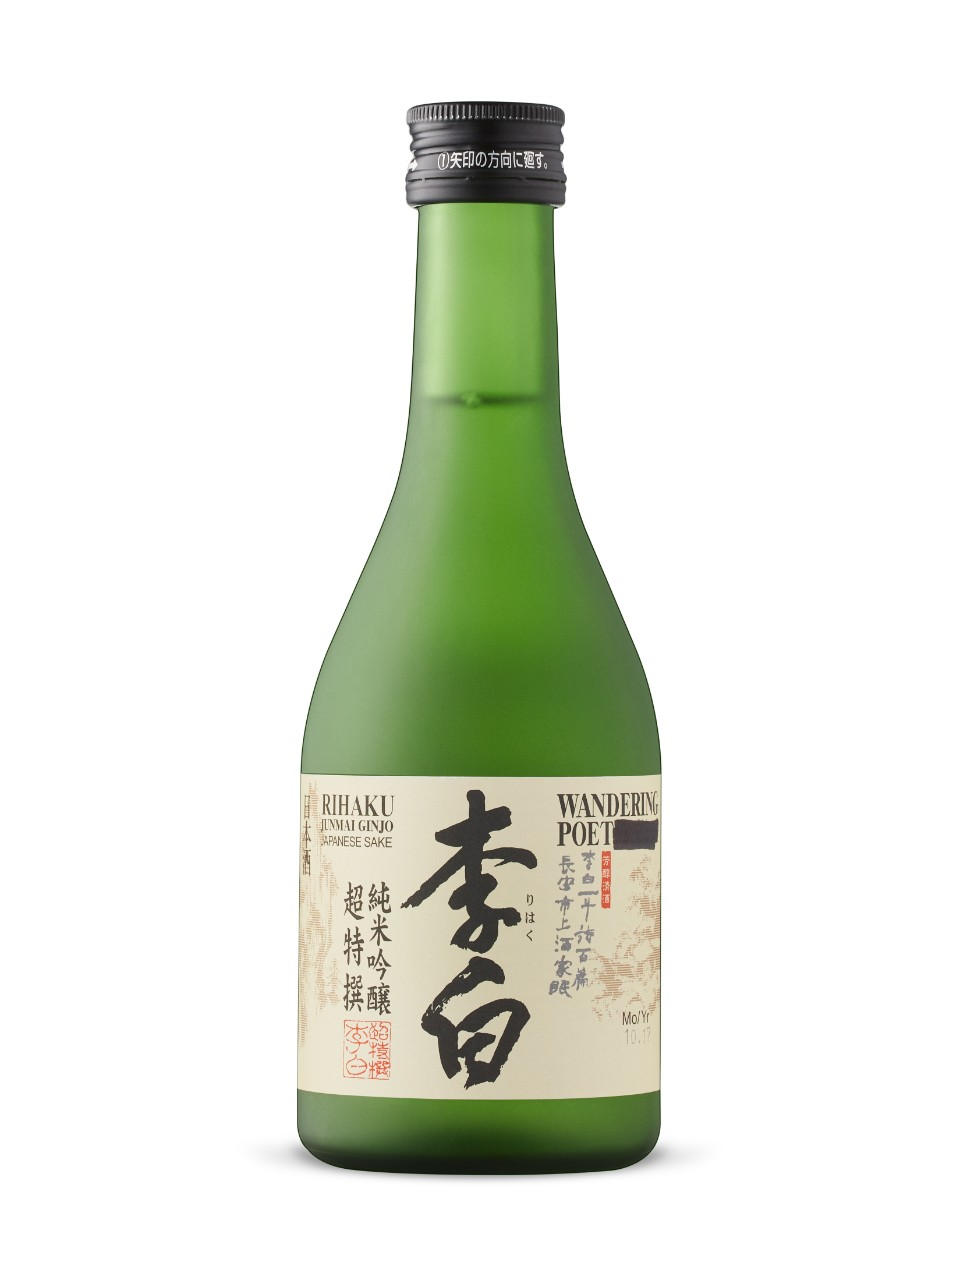 Image for Rihaku Wandering Poet Sake from LCBO